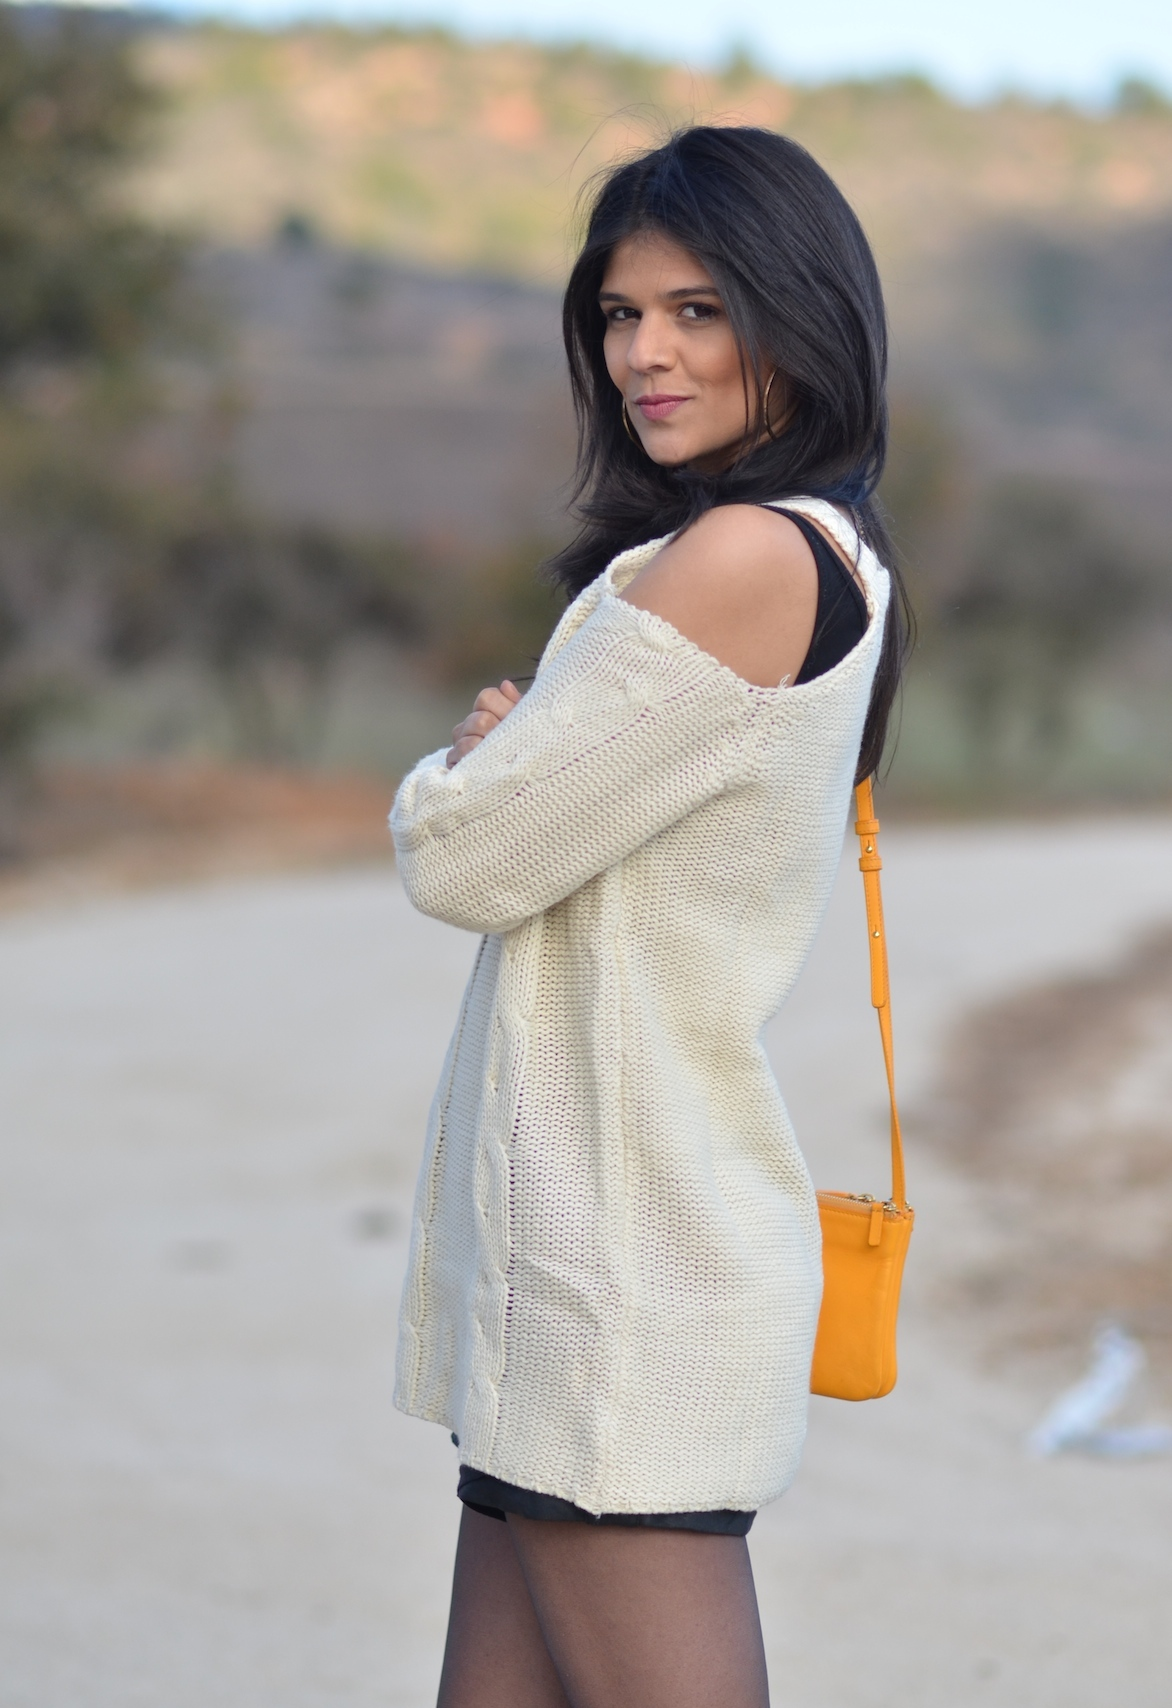 beta-pinheiro-blog-look-do-dia-tricot-ombros-de-fora